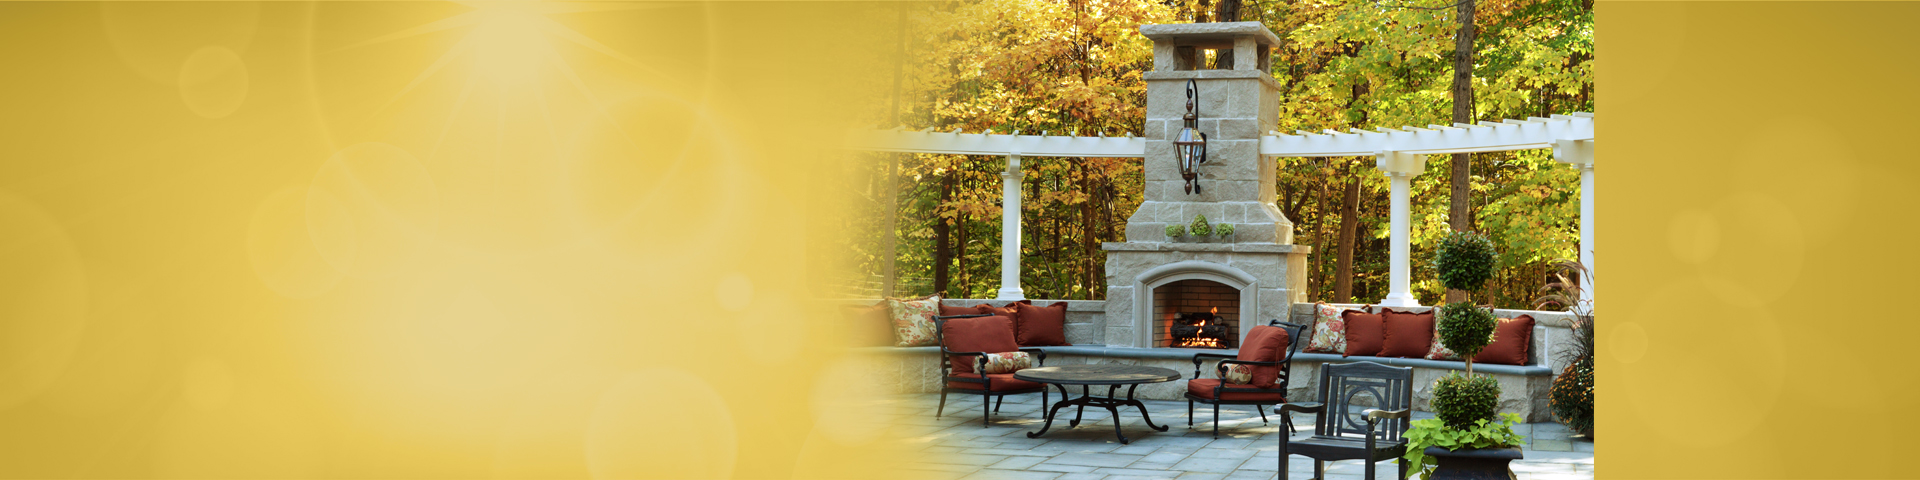 slider-yellow-fall-fireplace